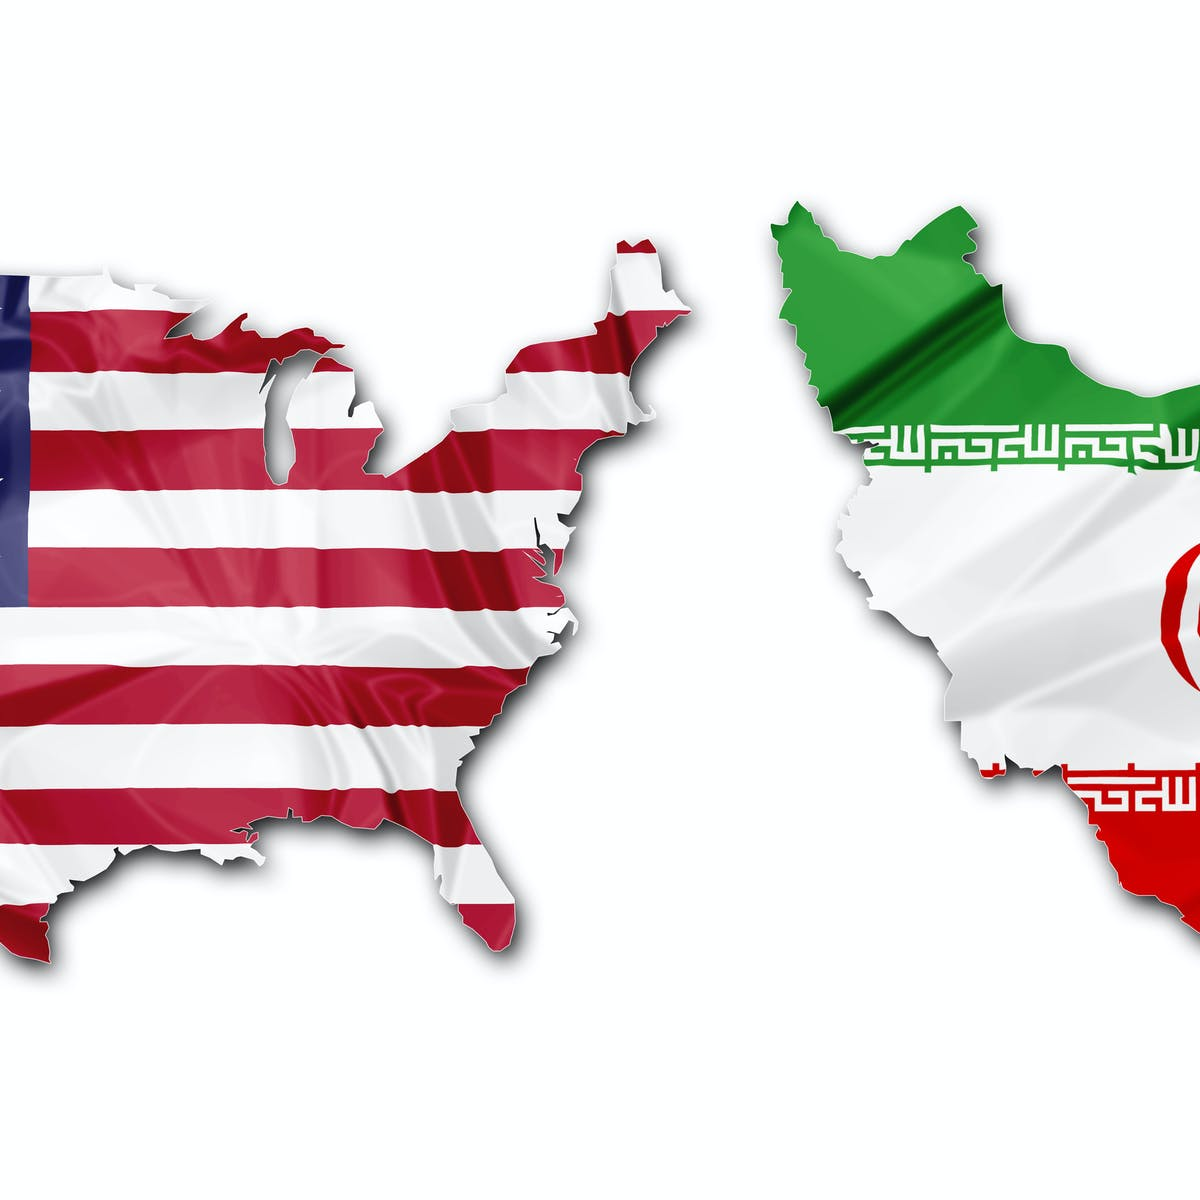 Us And Iran Have A Long Troubled History